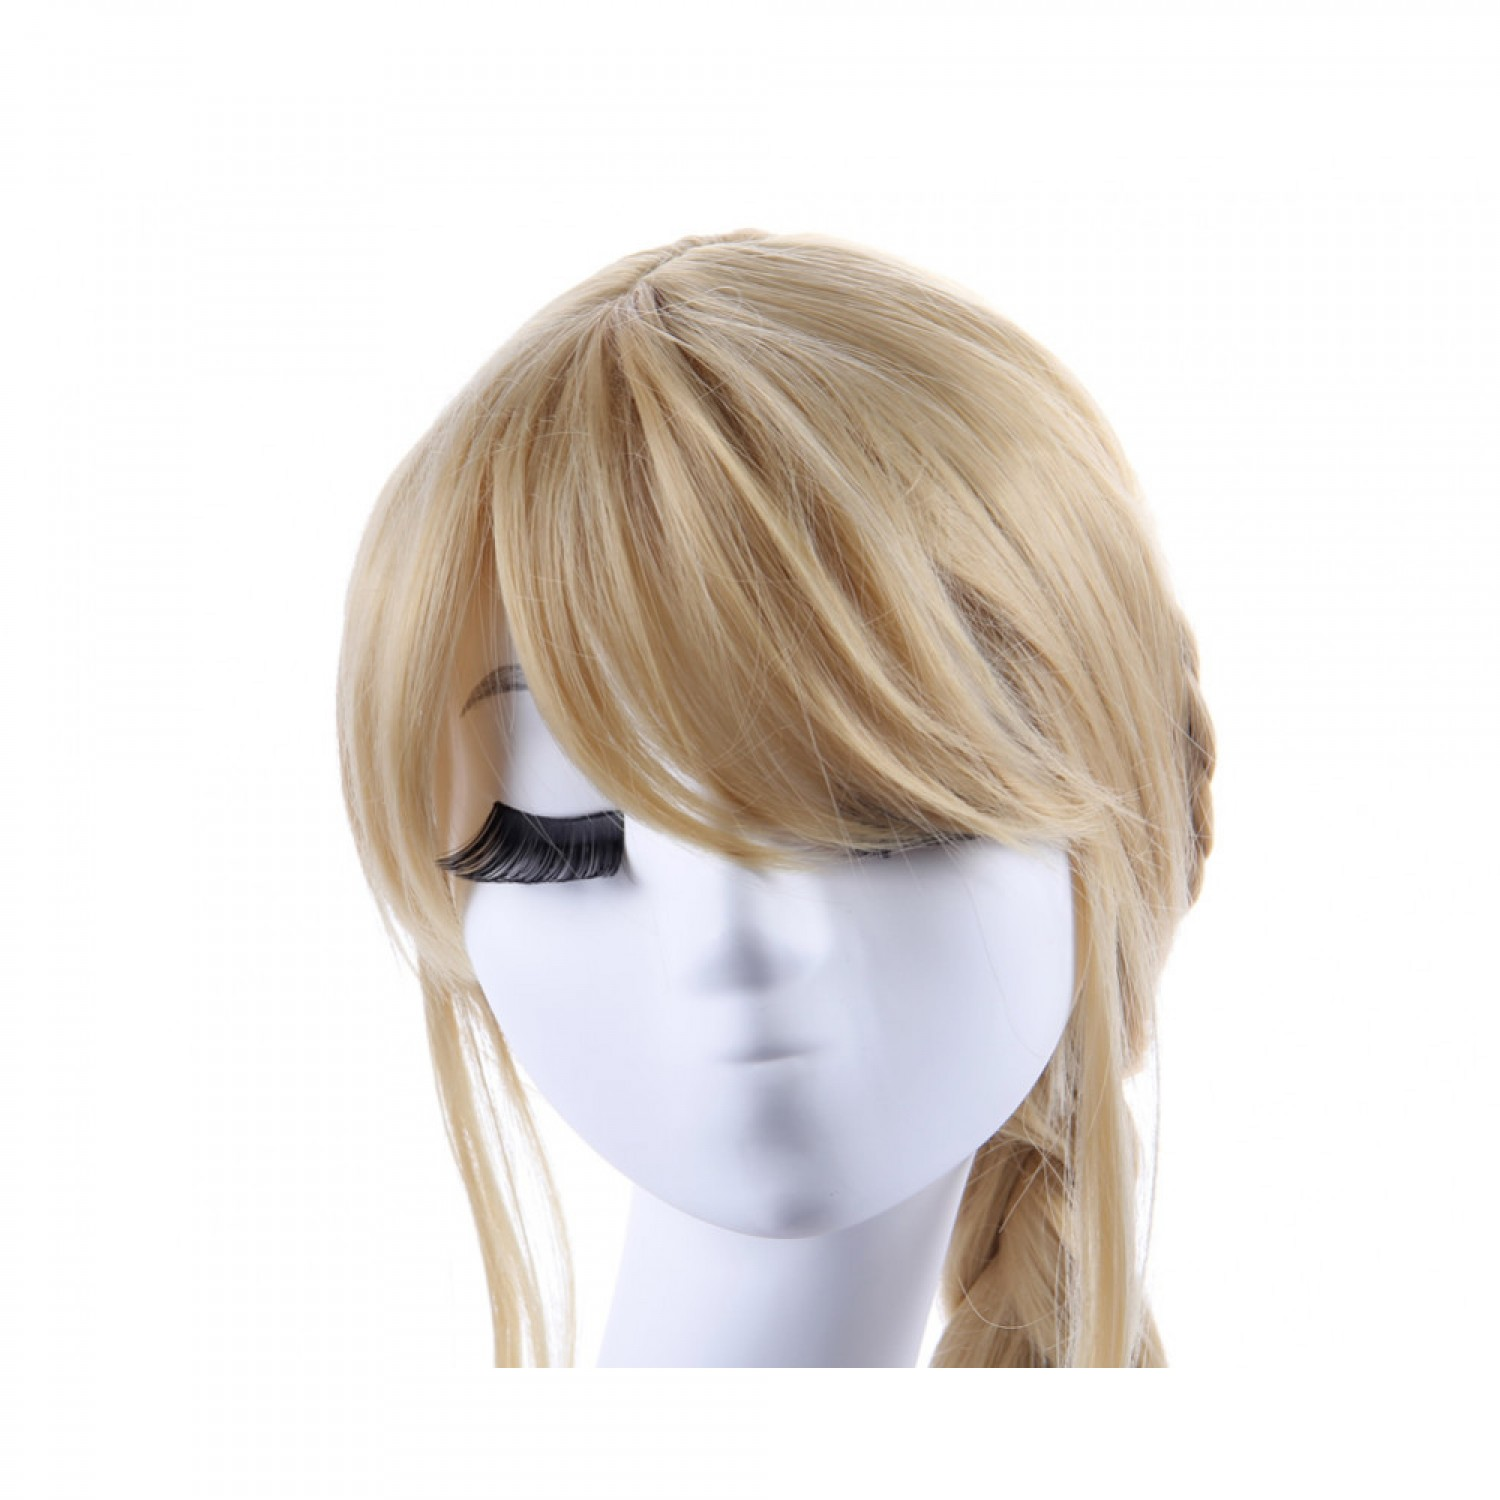 How to Train Your Dragon Astrid Costume Cosplay Hair Wig